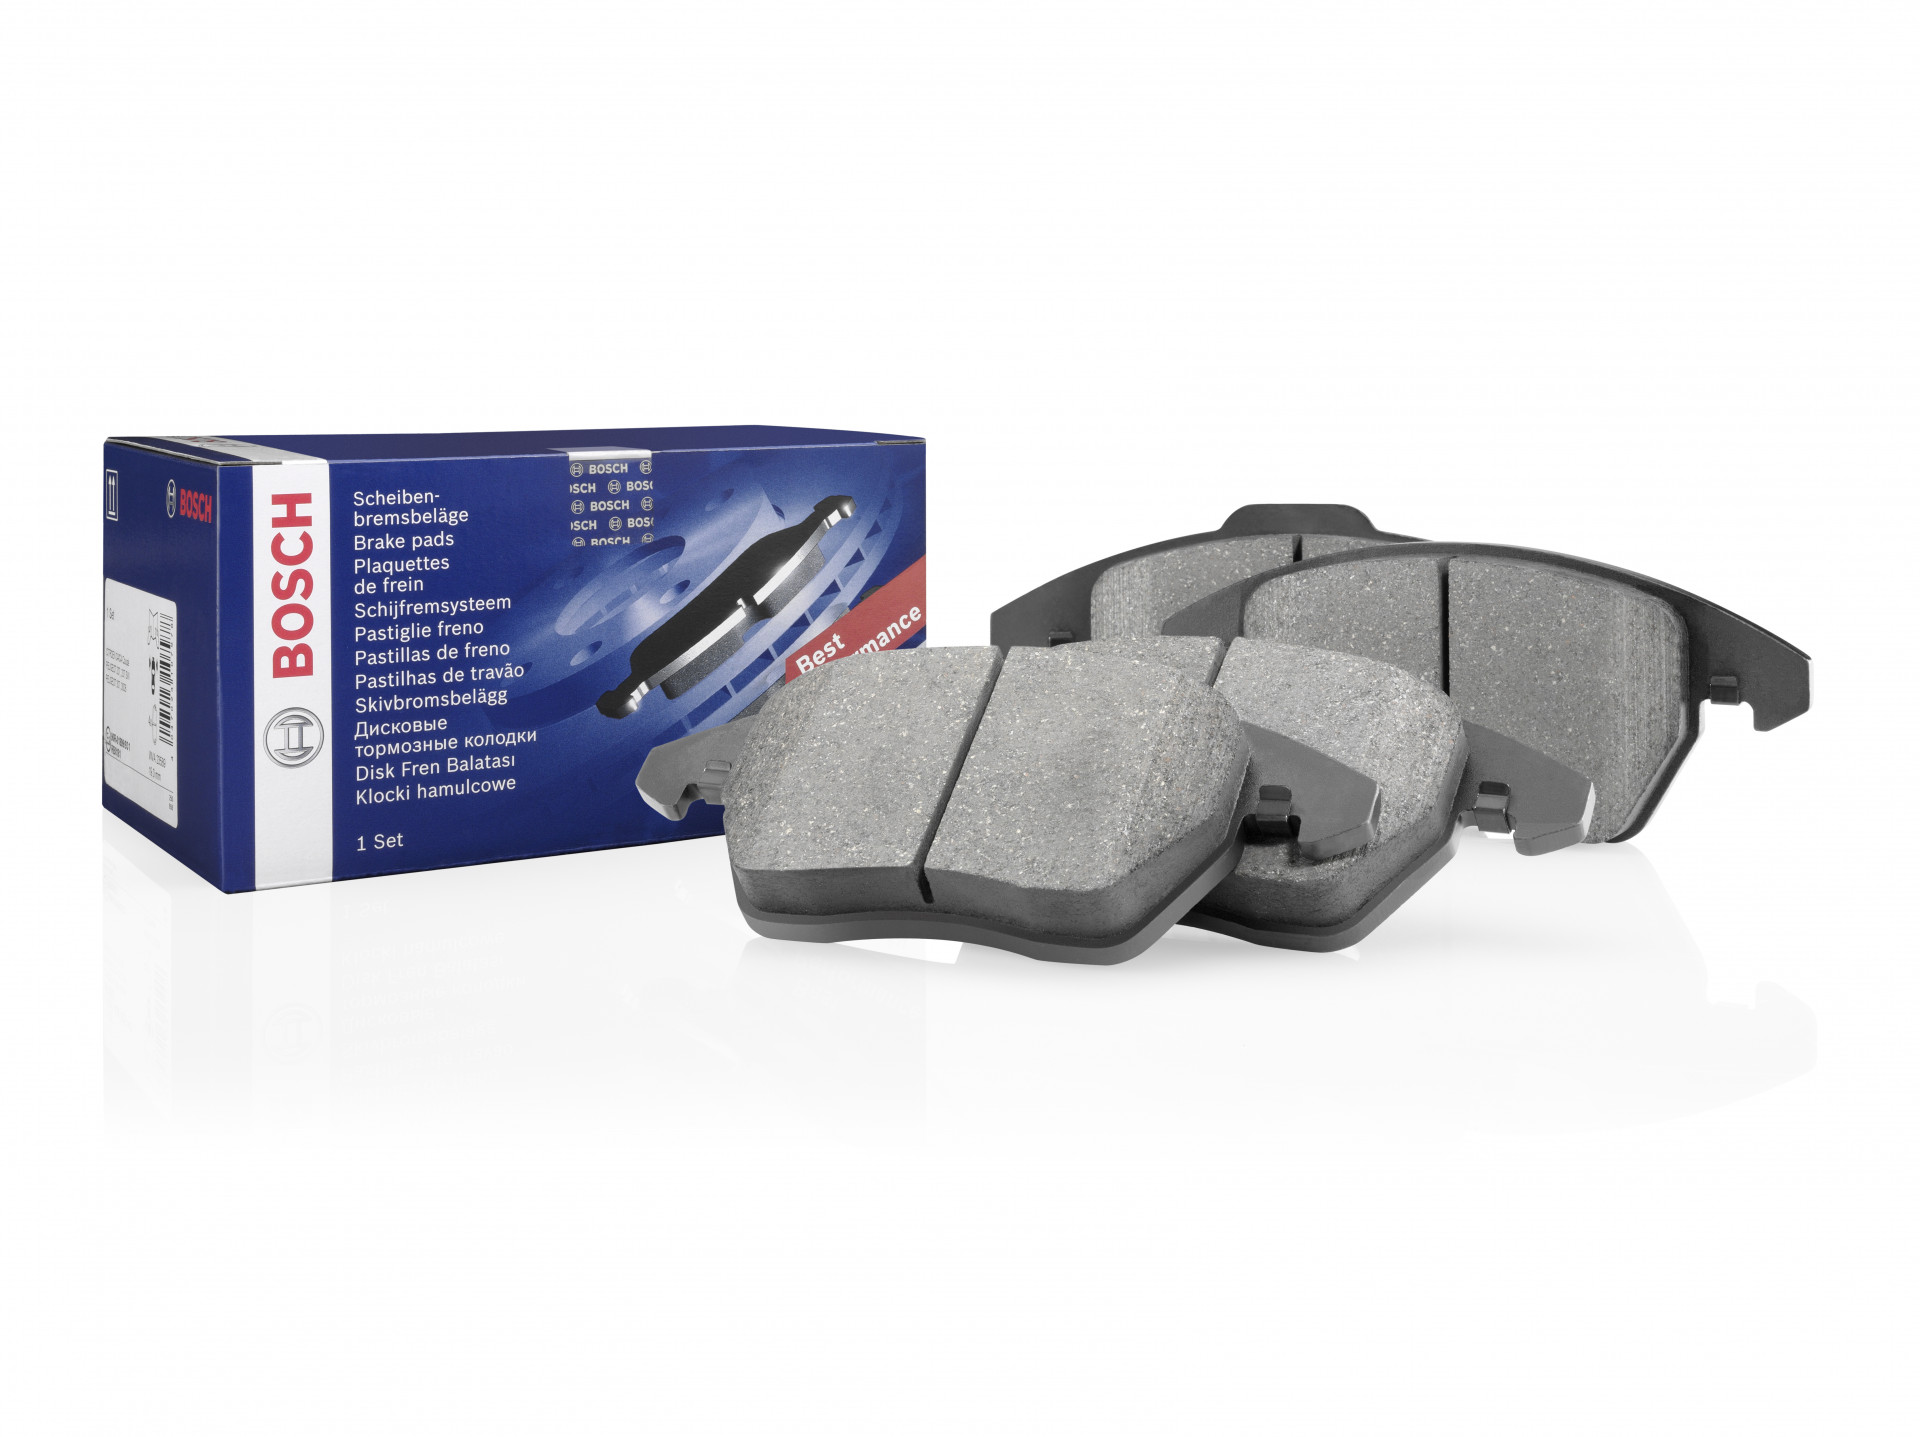 BR_Brake_pads_with_packaging_pict_CD2016_78023.jpg